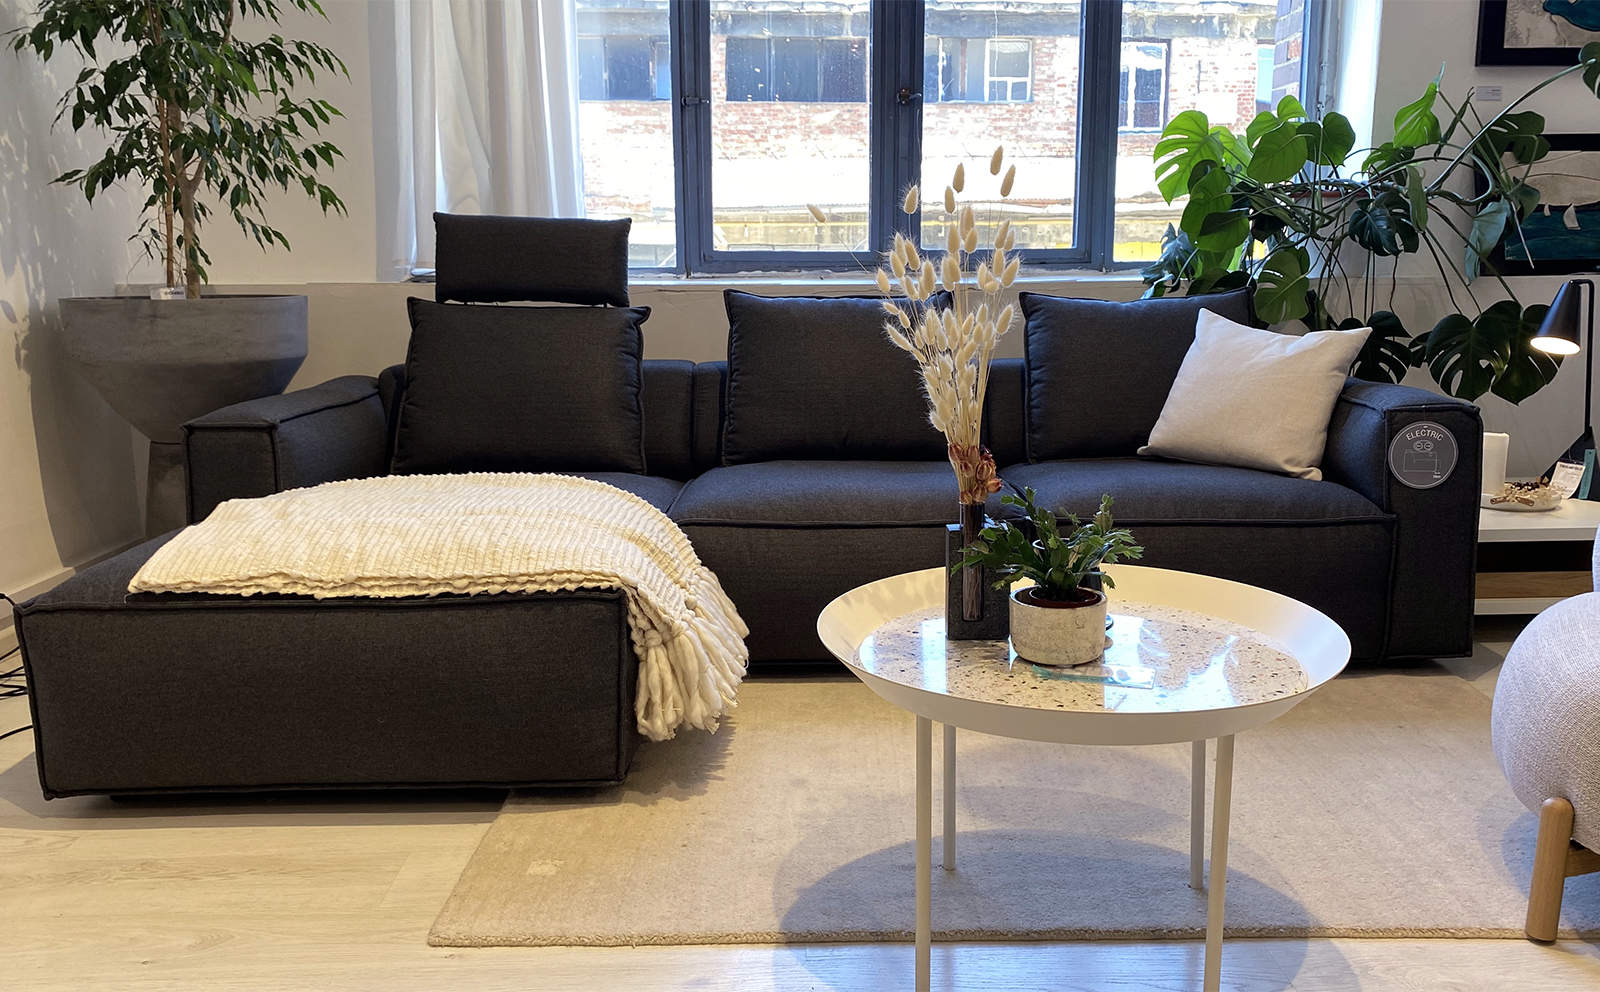 Levane 2 Seater Sofa With Chaise Longue Showroom Furniture Innoconcept